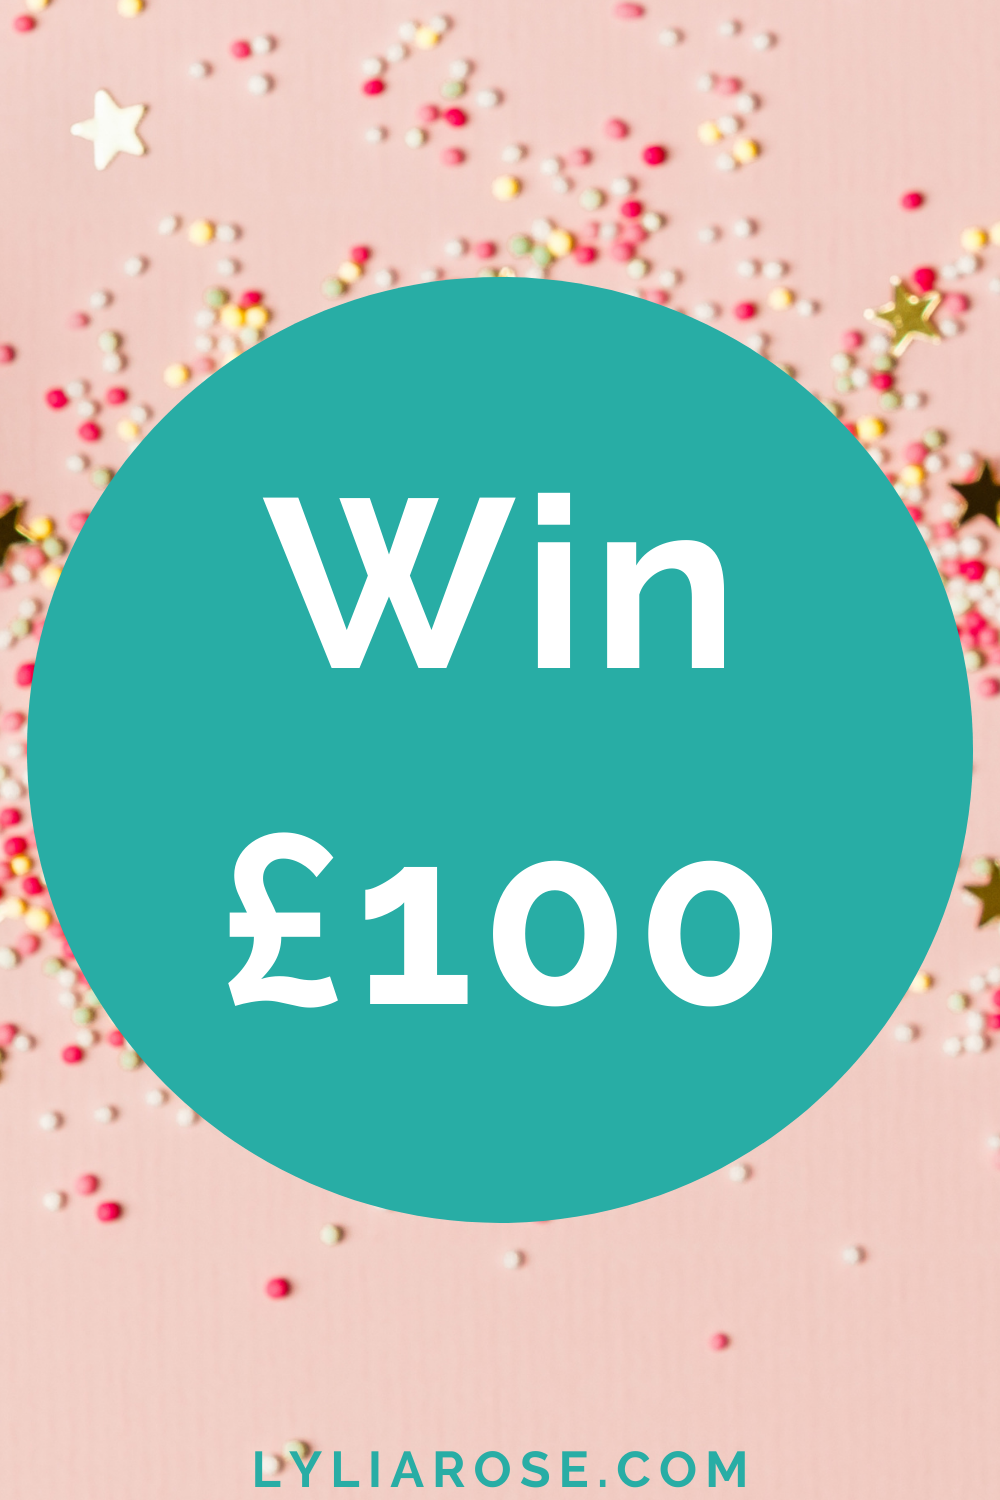 Win £100 to your PayPal in my March 2021 cash prize giveaway